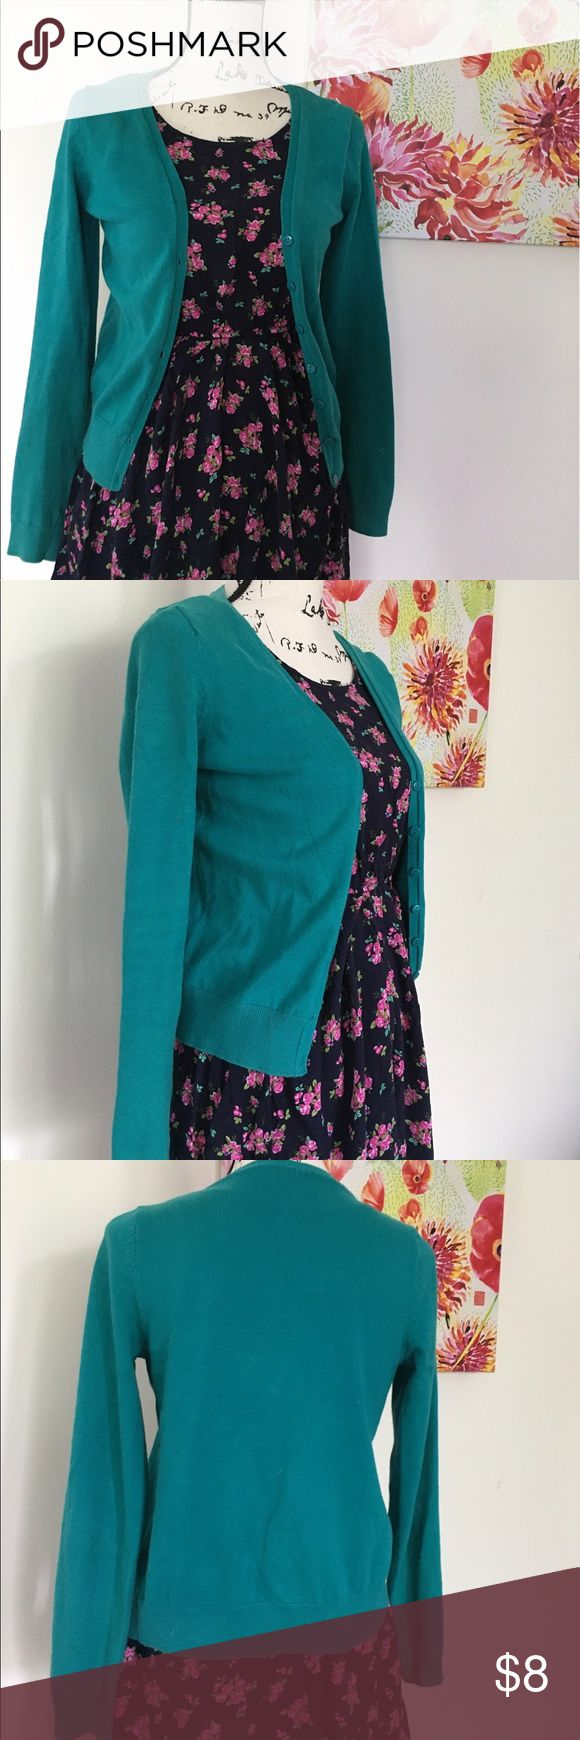 Cotton On Teal Cardigan Gently worn - still in great condition. Smoke free home. Will ship in one business day. All reasonable offers considered. Check out my closet for other great pieces and bundle deals!! Cotton On Sweaters Cardigans